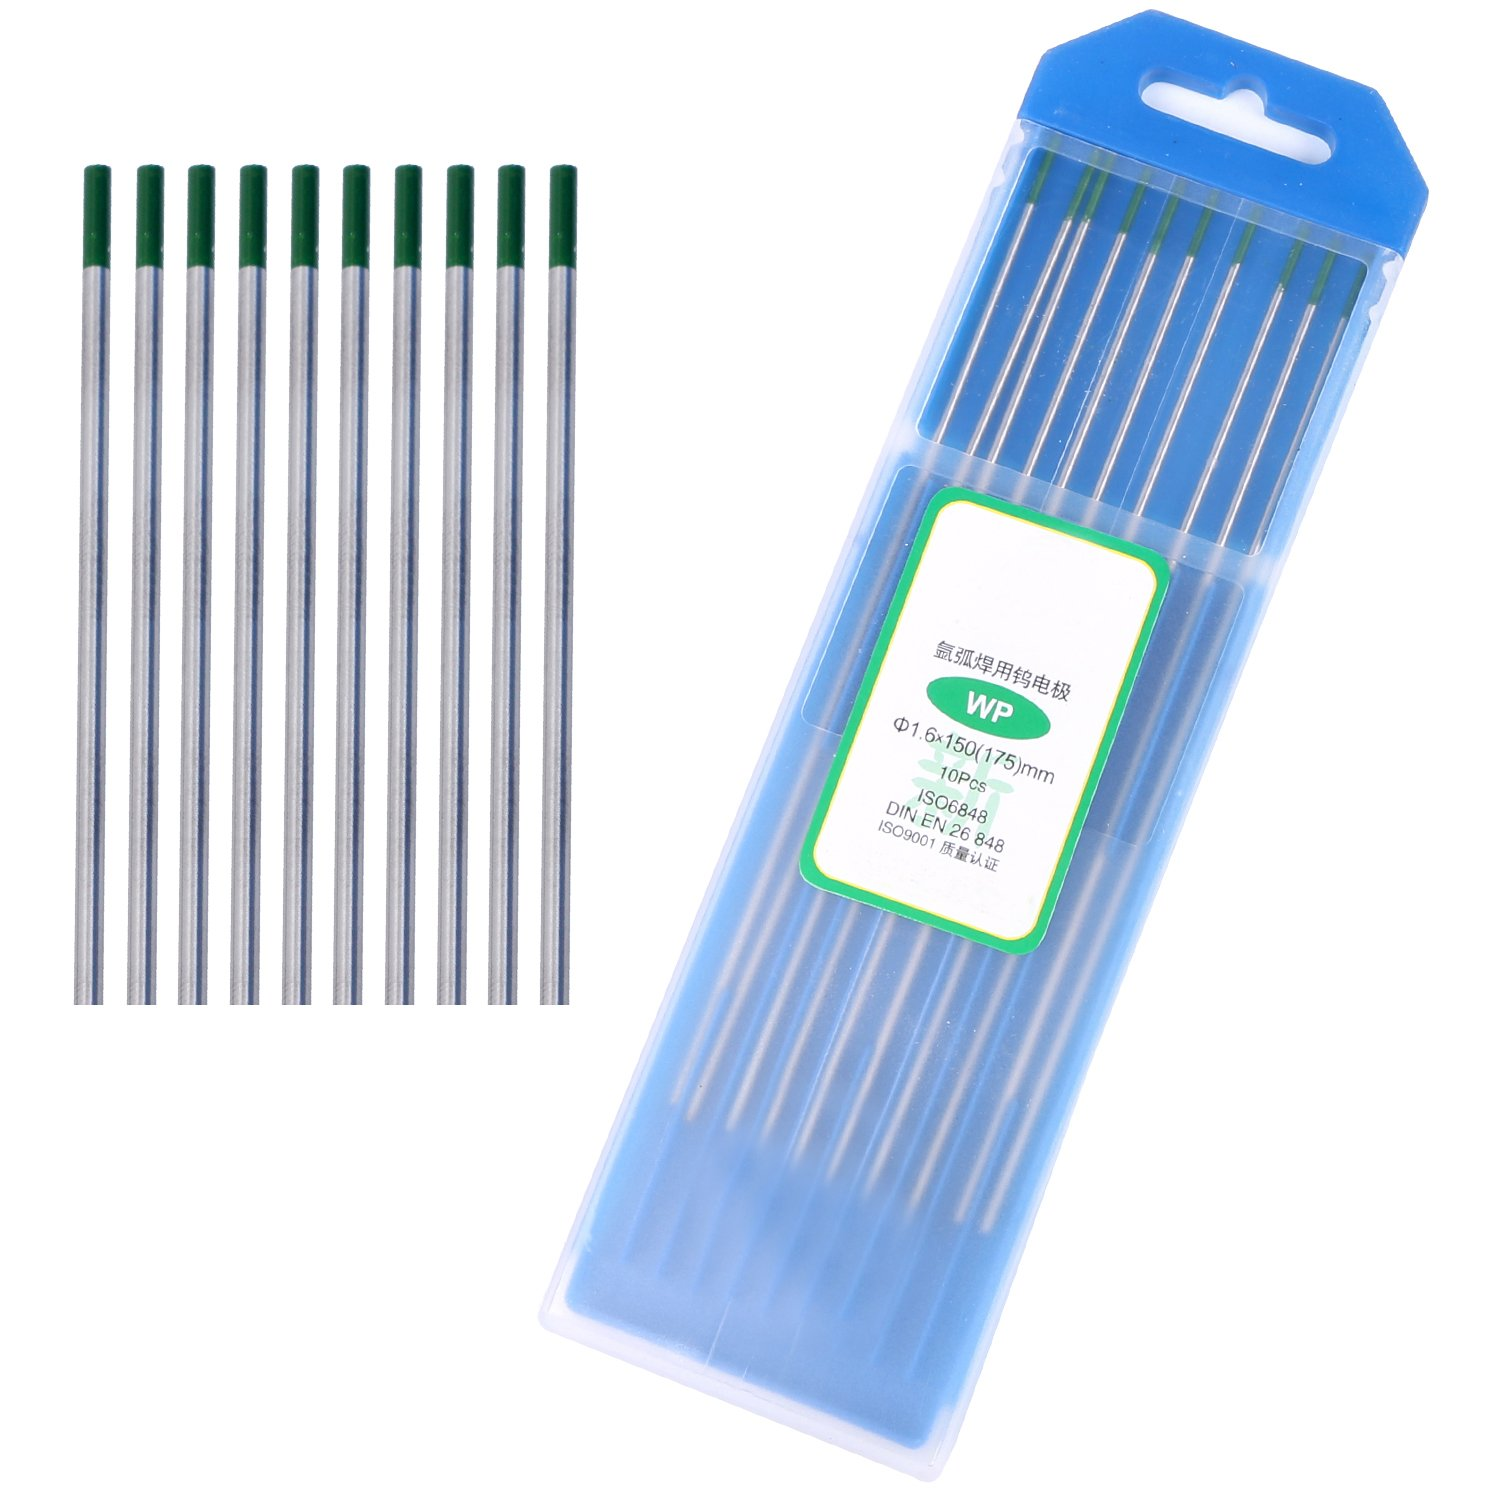 "DAHAN 10 Pieces TIG Welding Tungsten Electrodes Green for Aluminum Pure Tungsten Welding Rod (WP20) Diam: 5/64""(2.0mm)"